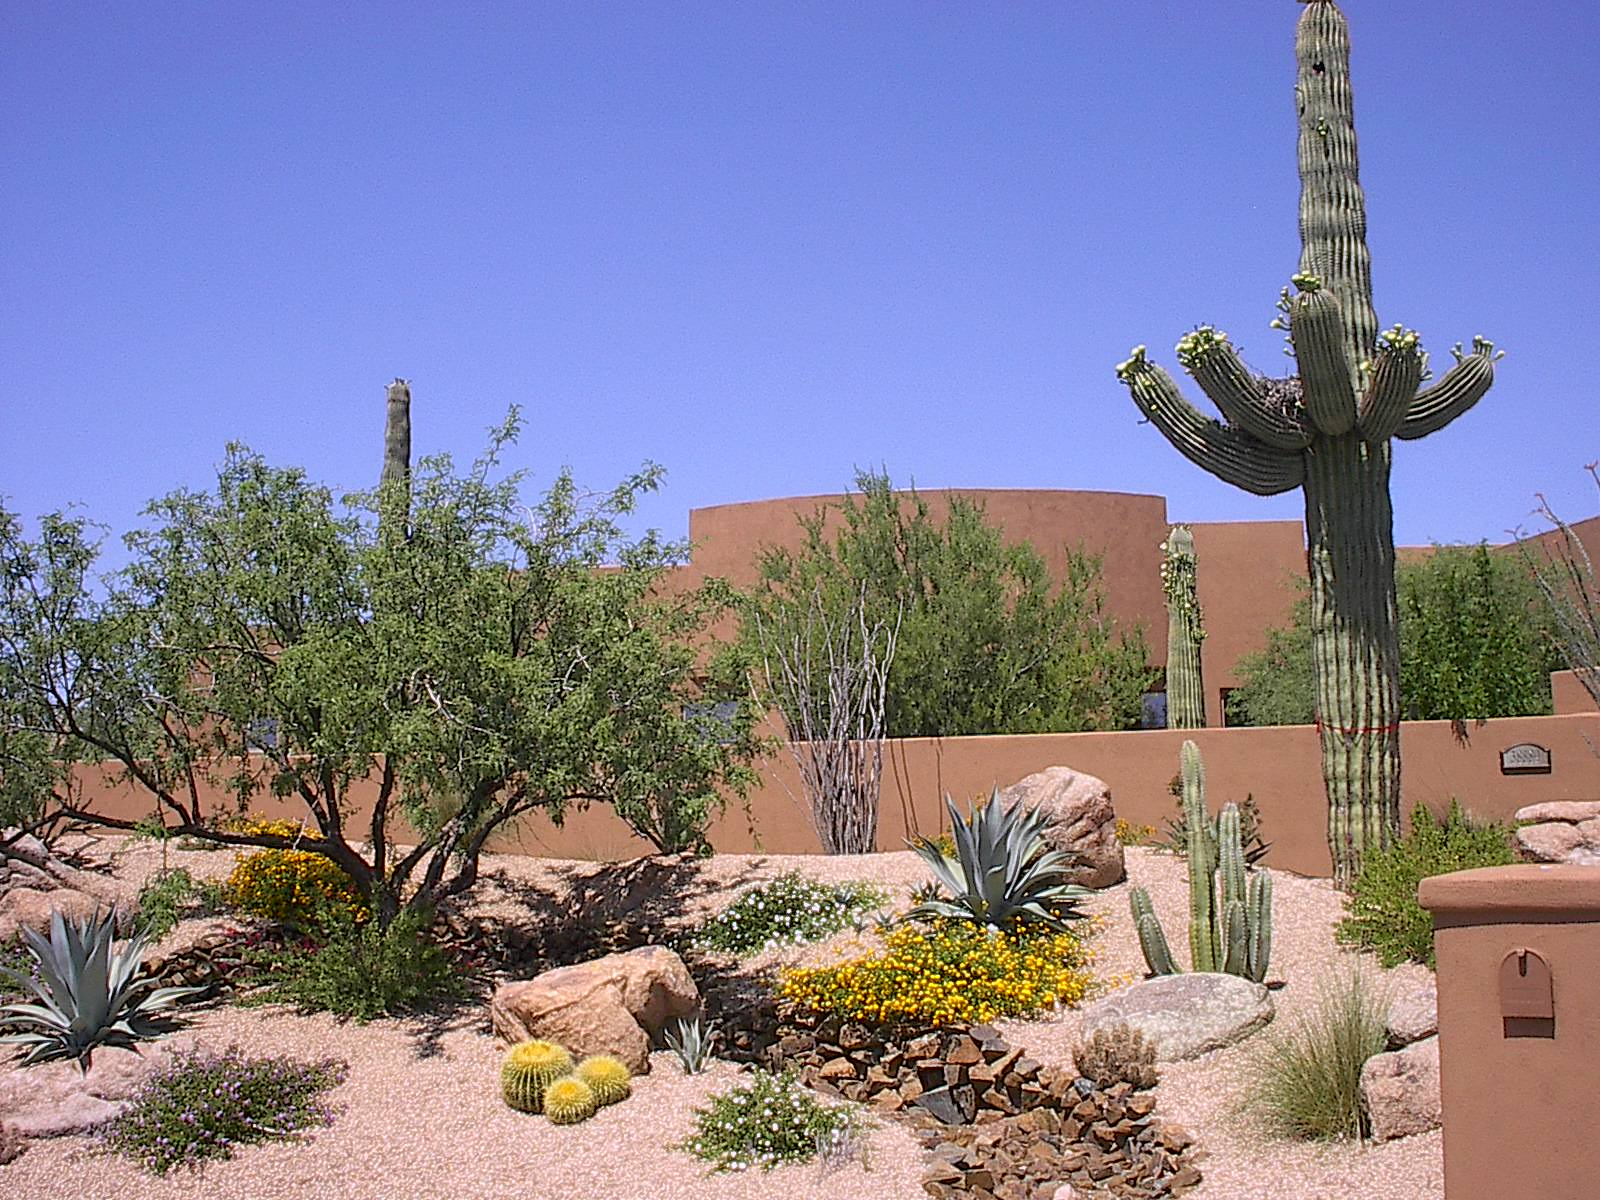 Featured project gallery for Desert landscape design ideas